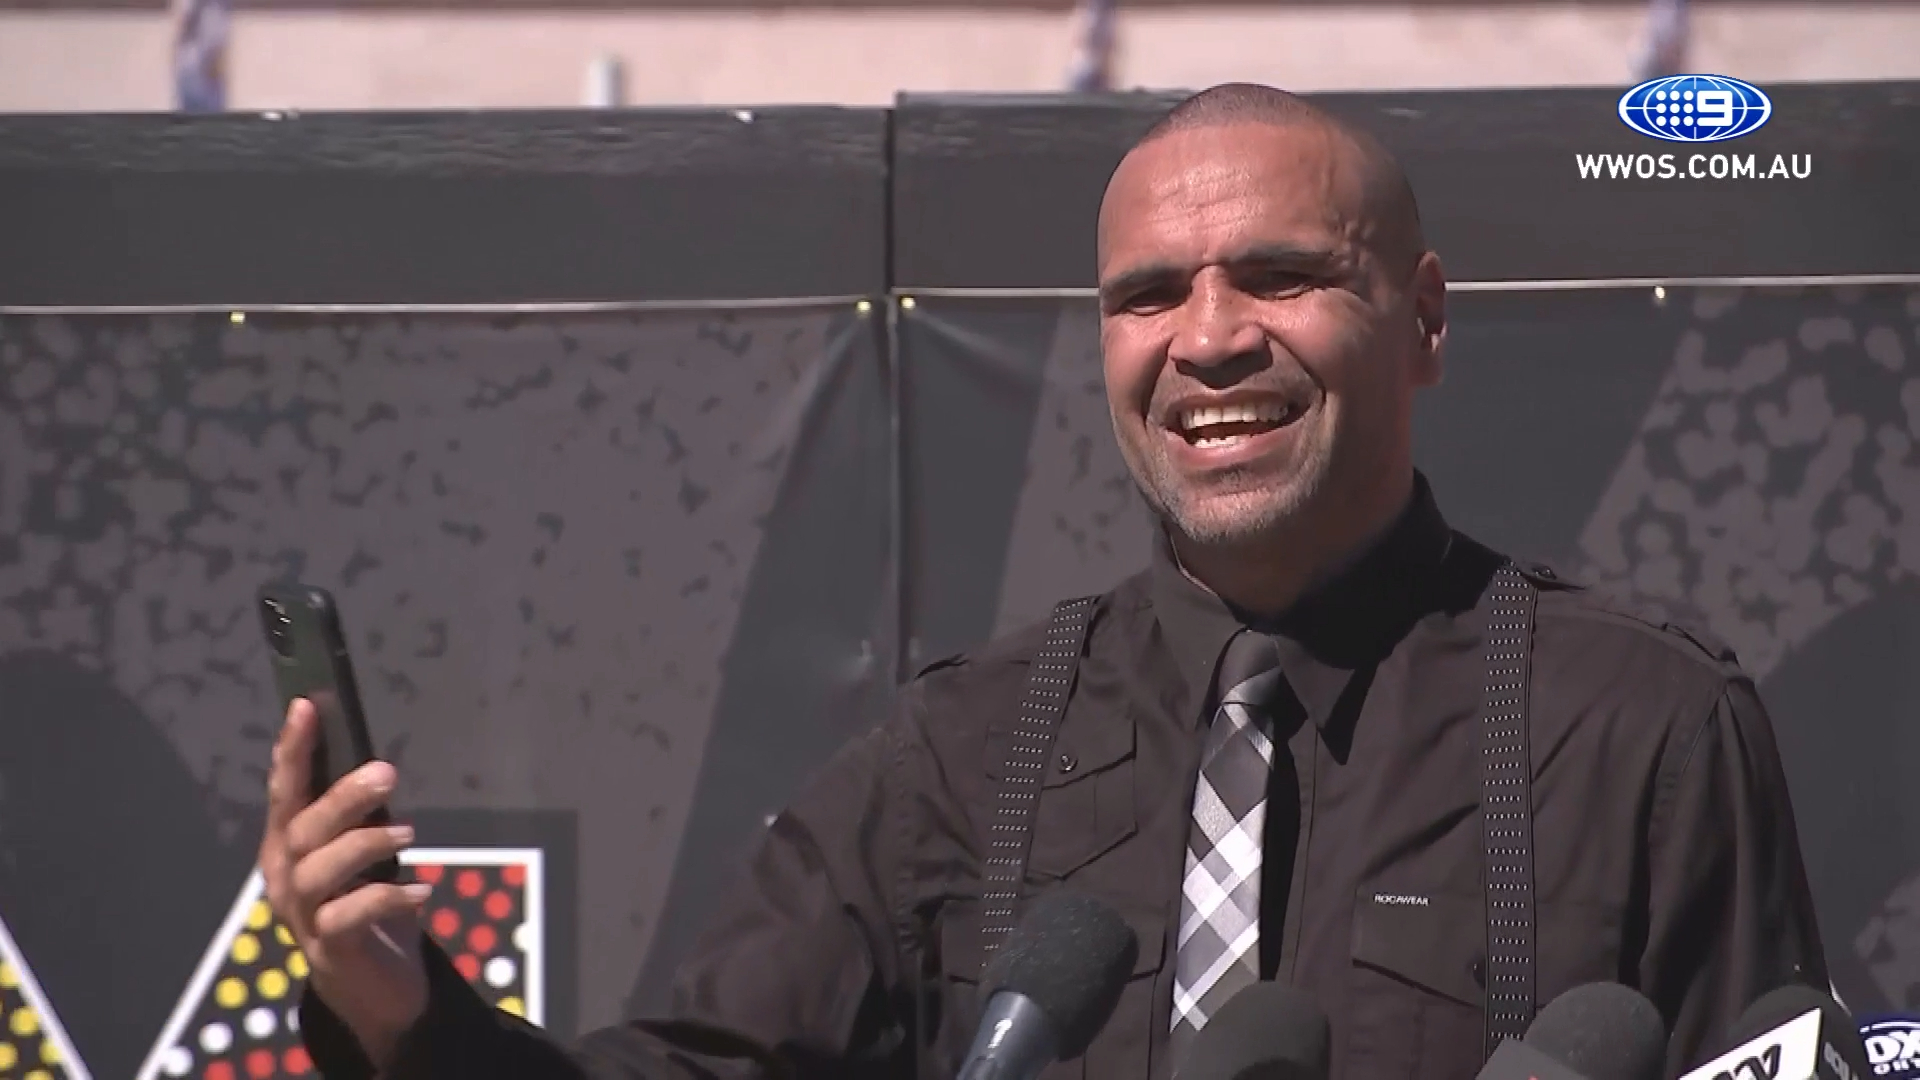 Kelly Slater calls Mundine during retirement press conference